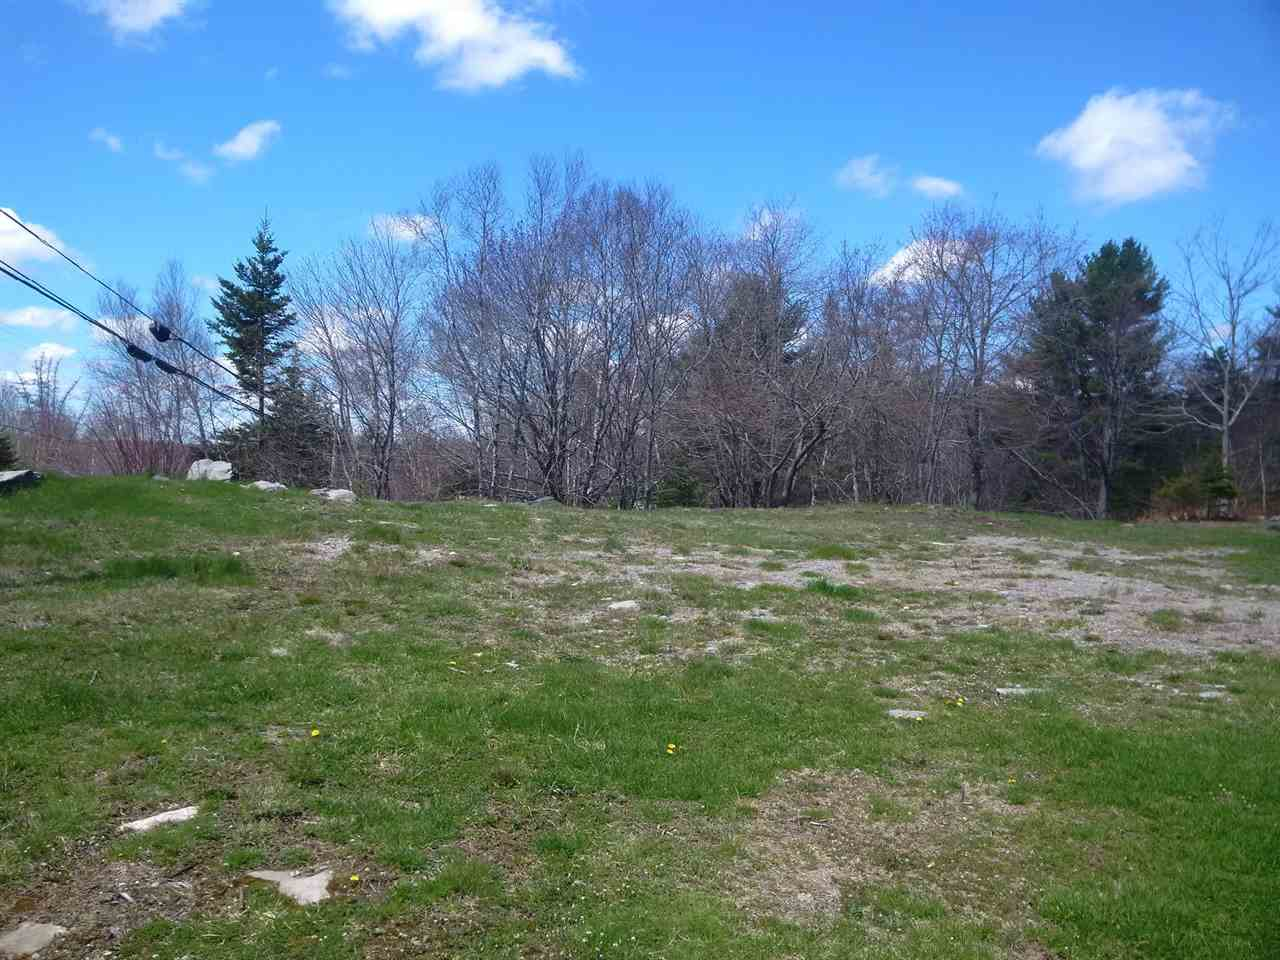 Photo 5: Photos: 5720 Highway 3 in East Jordan: 407-Shelburne County Vacant Land for sale (South Shore)  : MLS®# 201708962